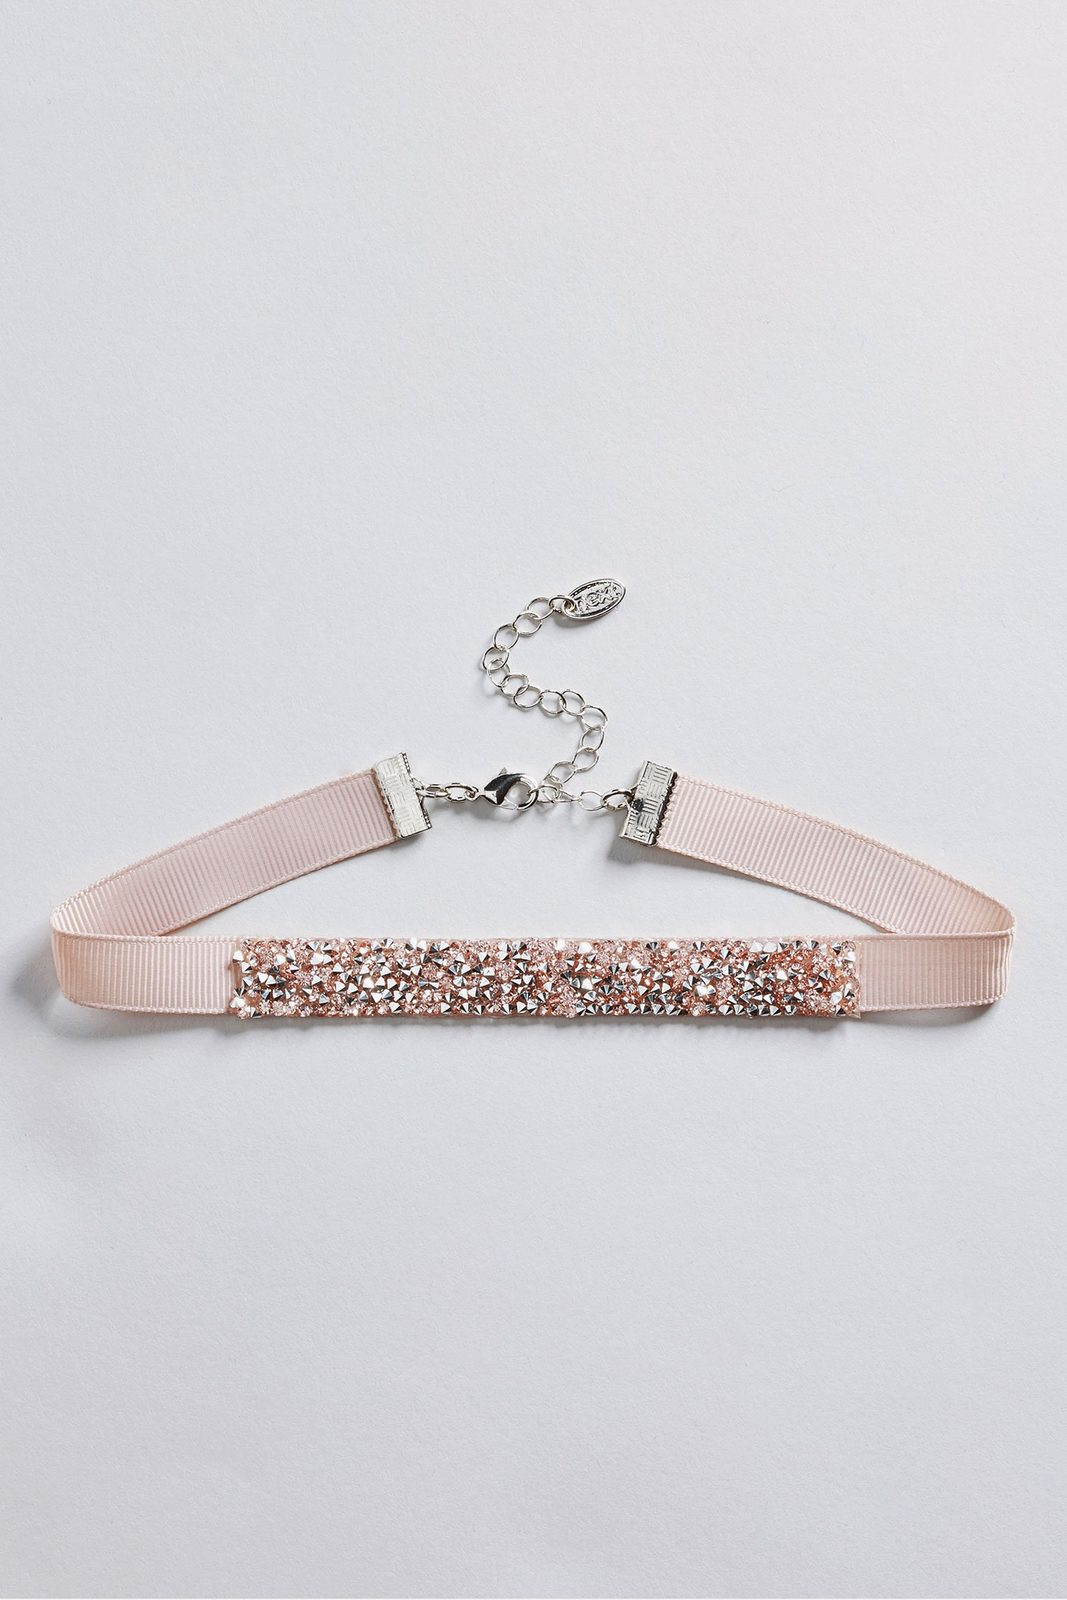 Next Choker aus Stoff in Glitzeroptik